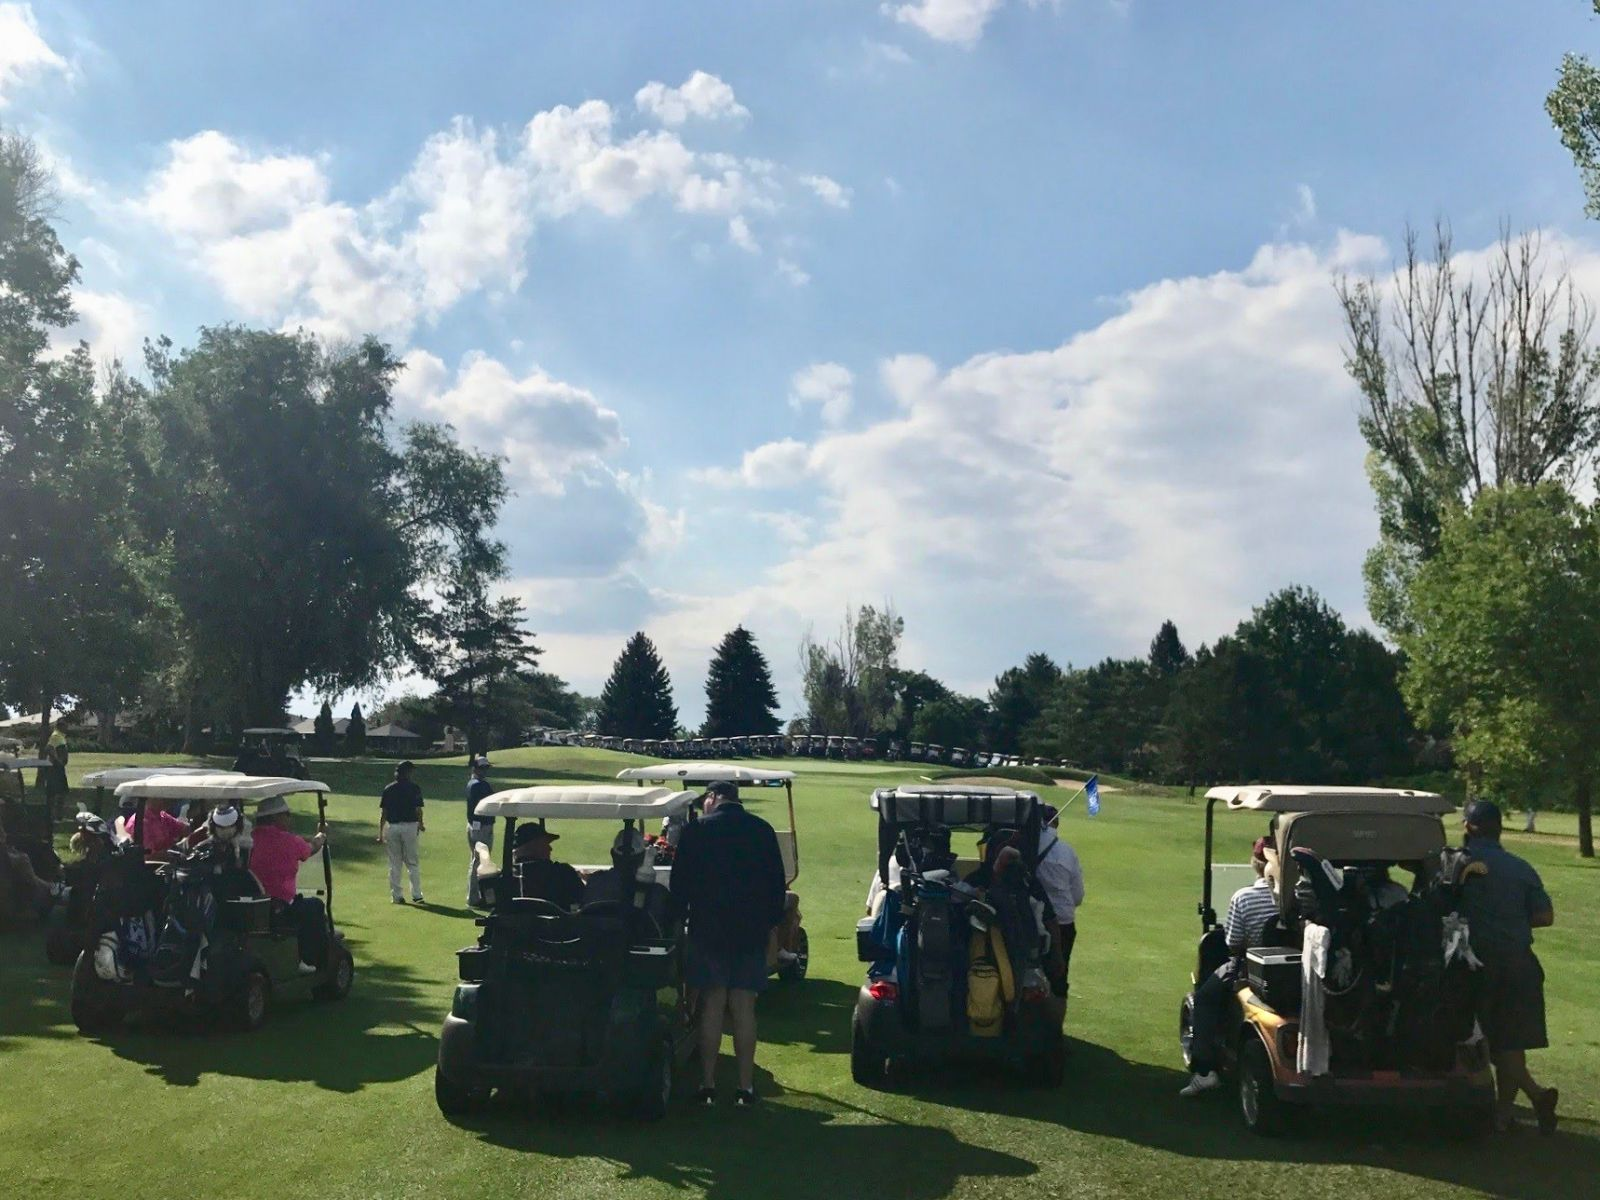 Golfs carts ready to go at The Fox Hill Club